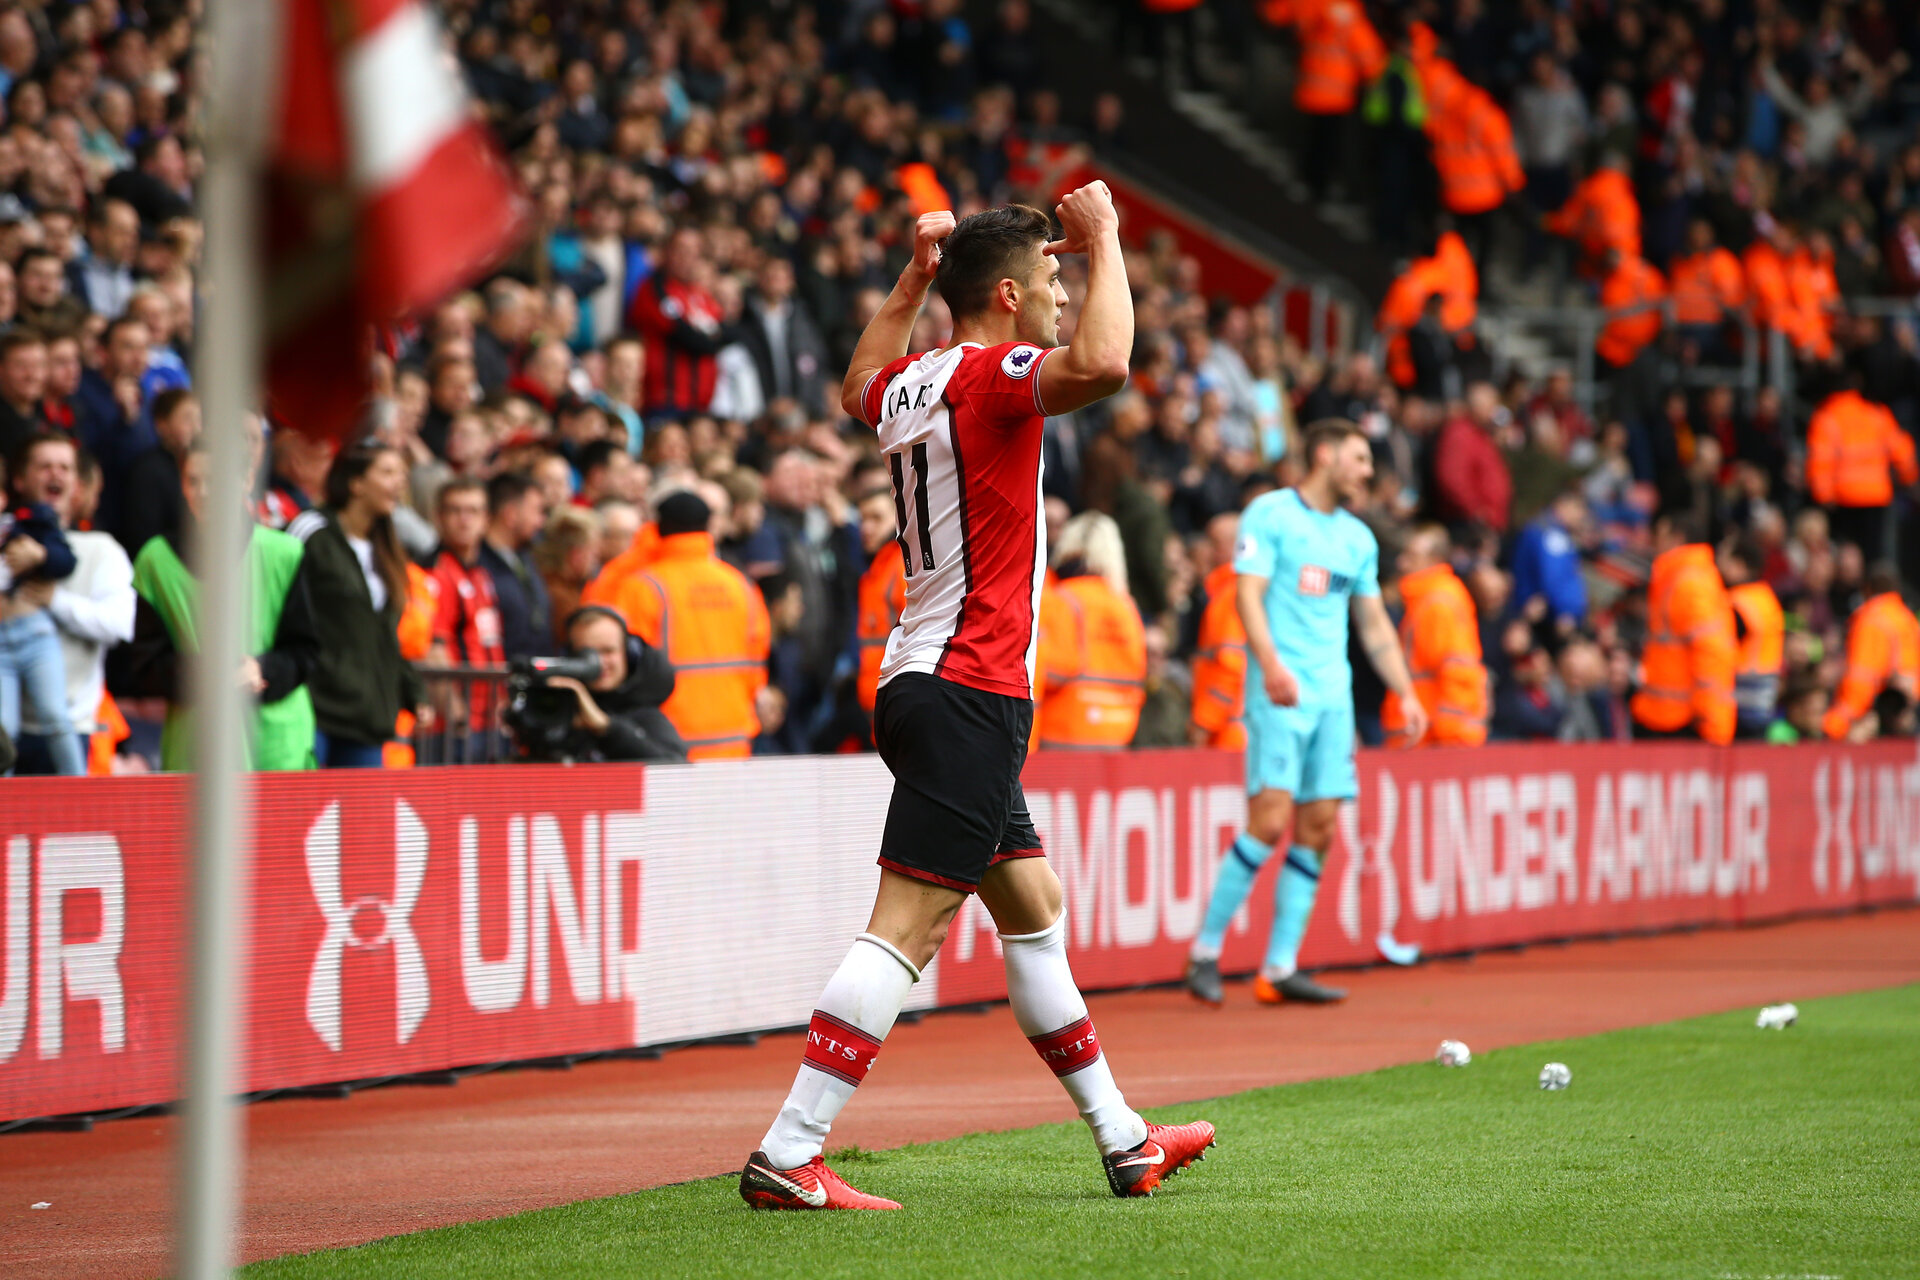 SOUTHAMPTON, ENGLAND - APRIL 28: Dusan Tadic scores for Southampton FC during the Premier League match between Southampton and AFC Bournemouth at St Mary's Stadium on April 28, 2018 in Southampton, England. (Photo by James Bridle - Southampton FC/Southampton FC via Getty Images)